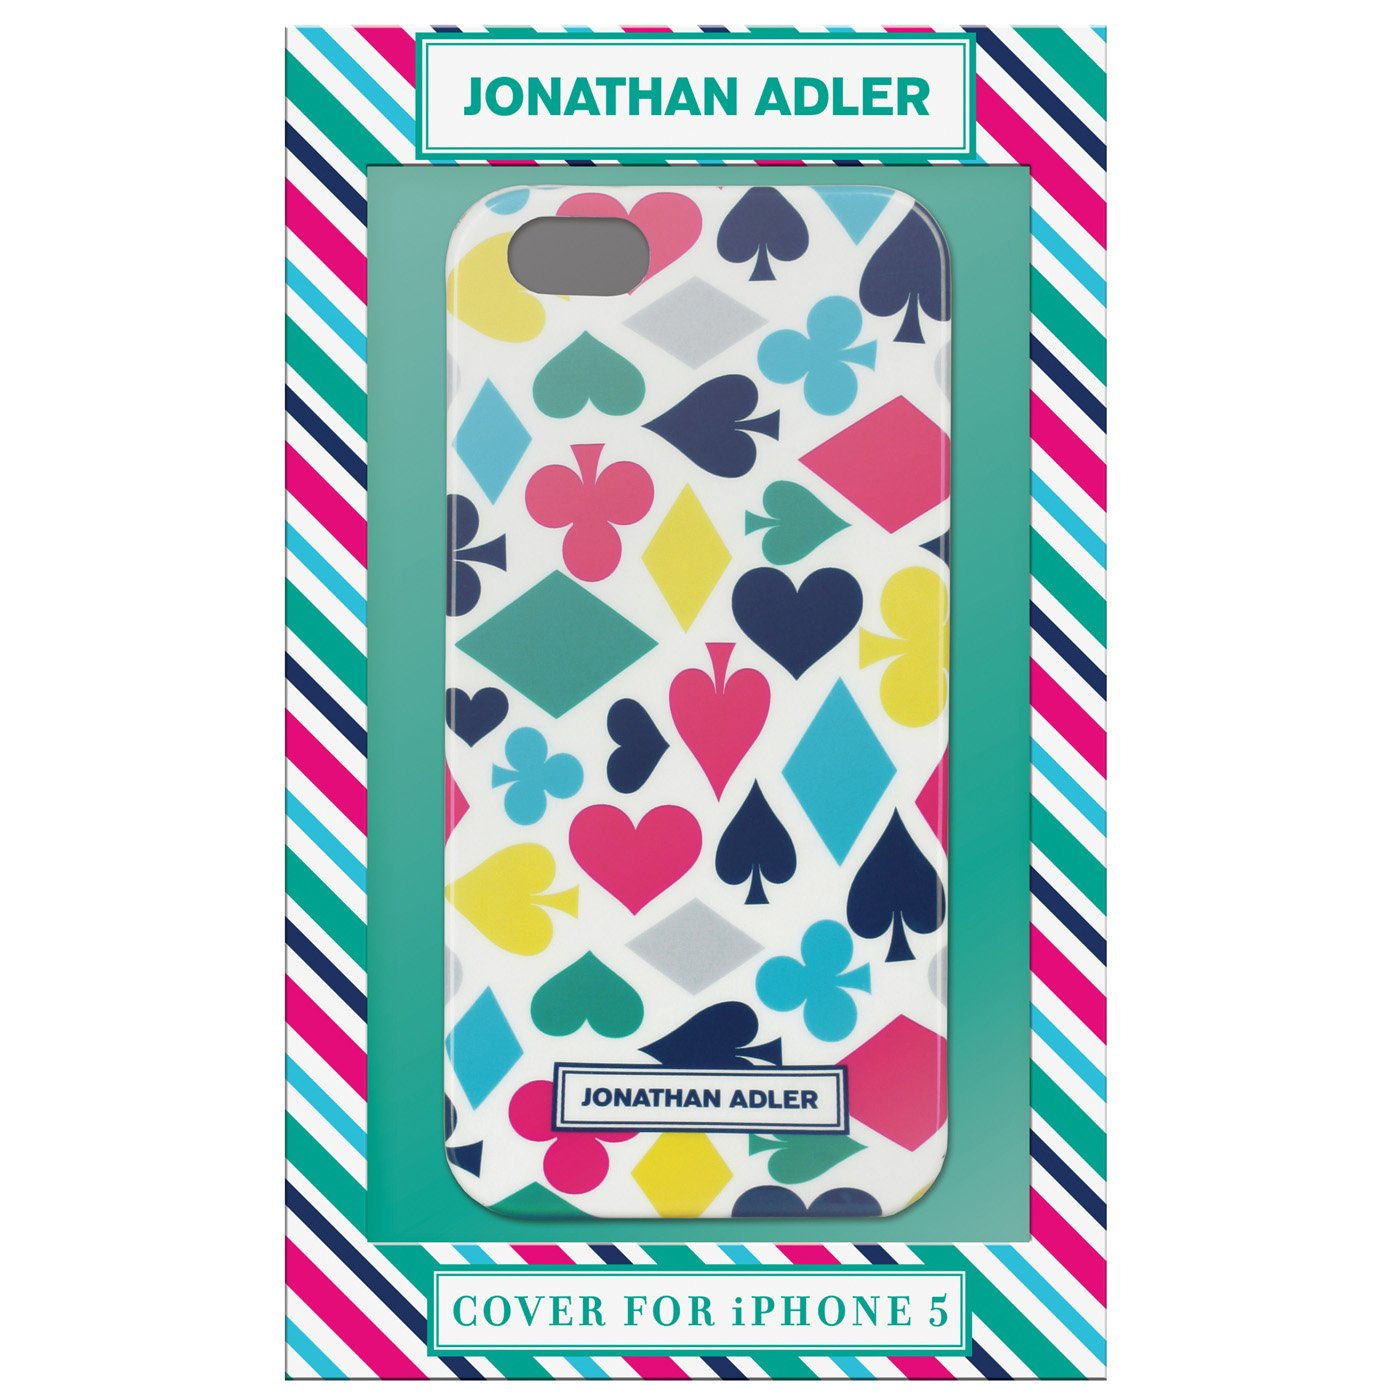 Jonathan Adler iPhone 5 Cover - House of Cards